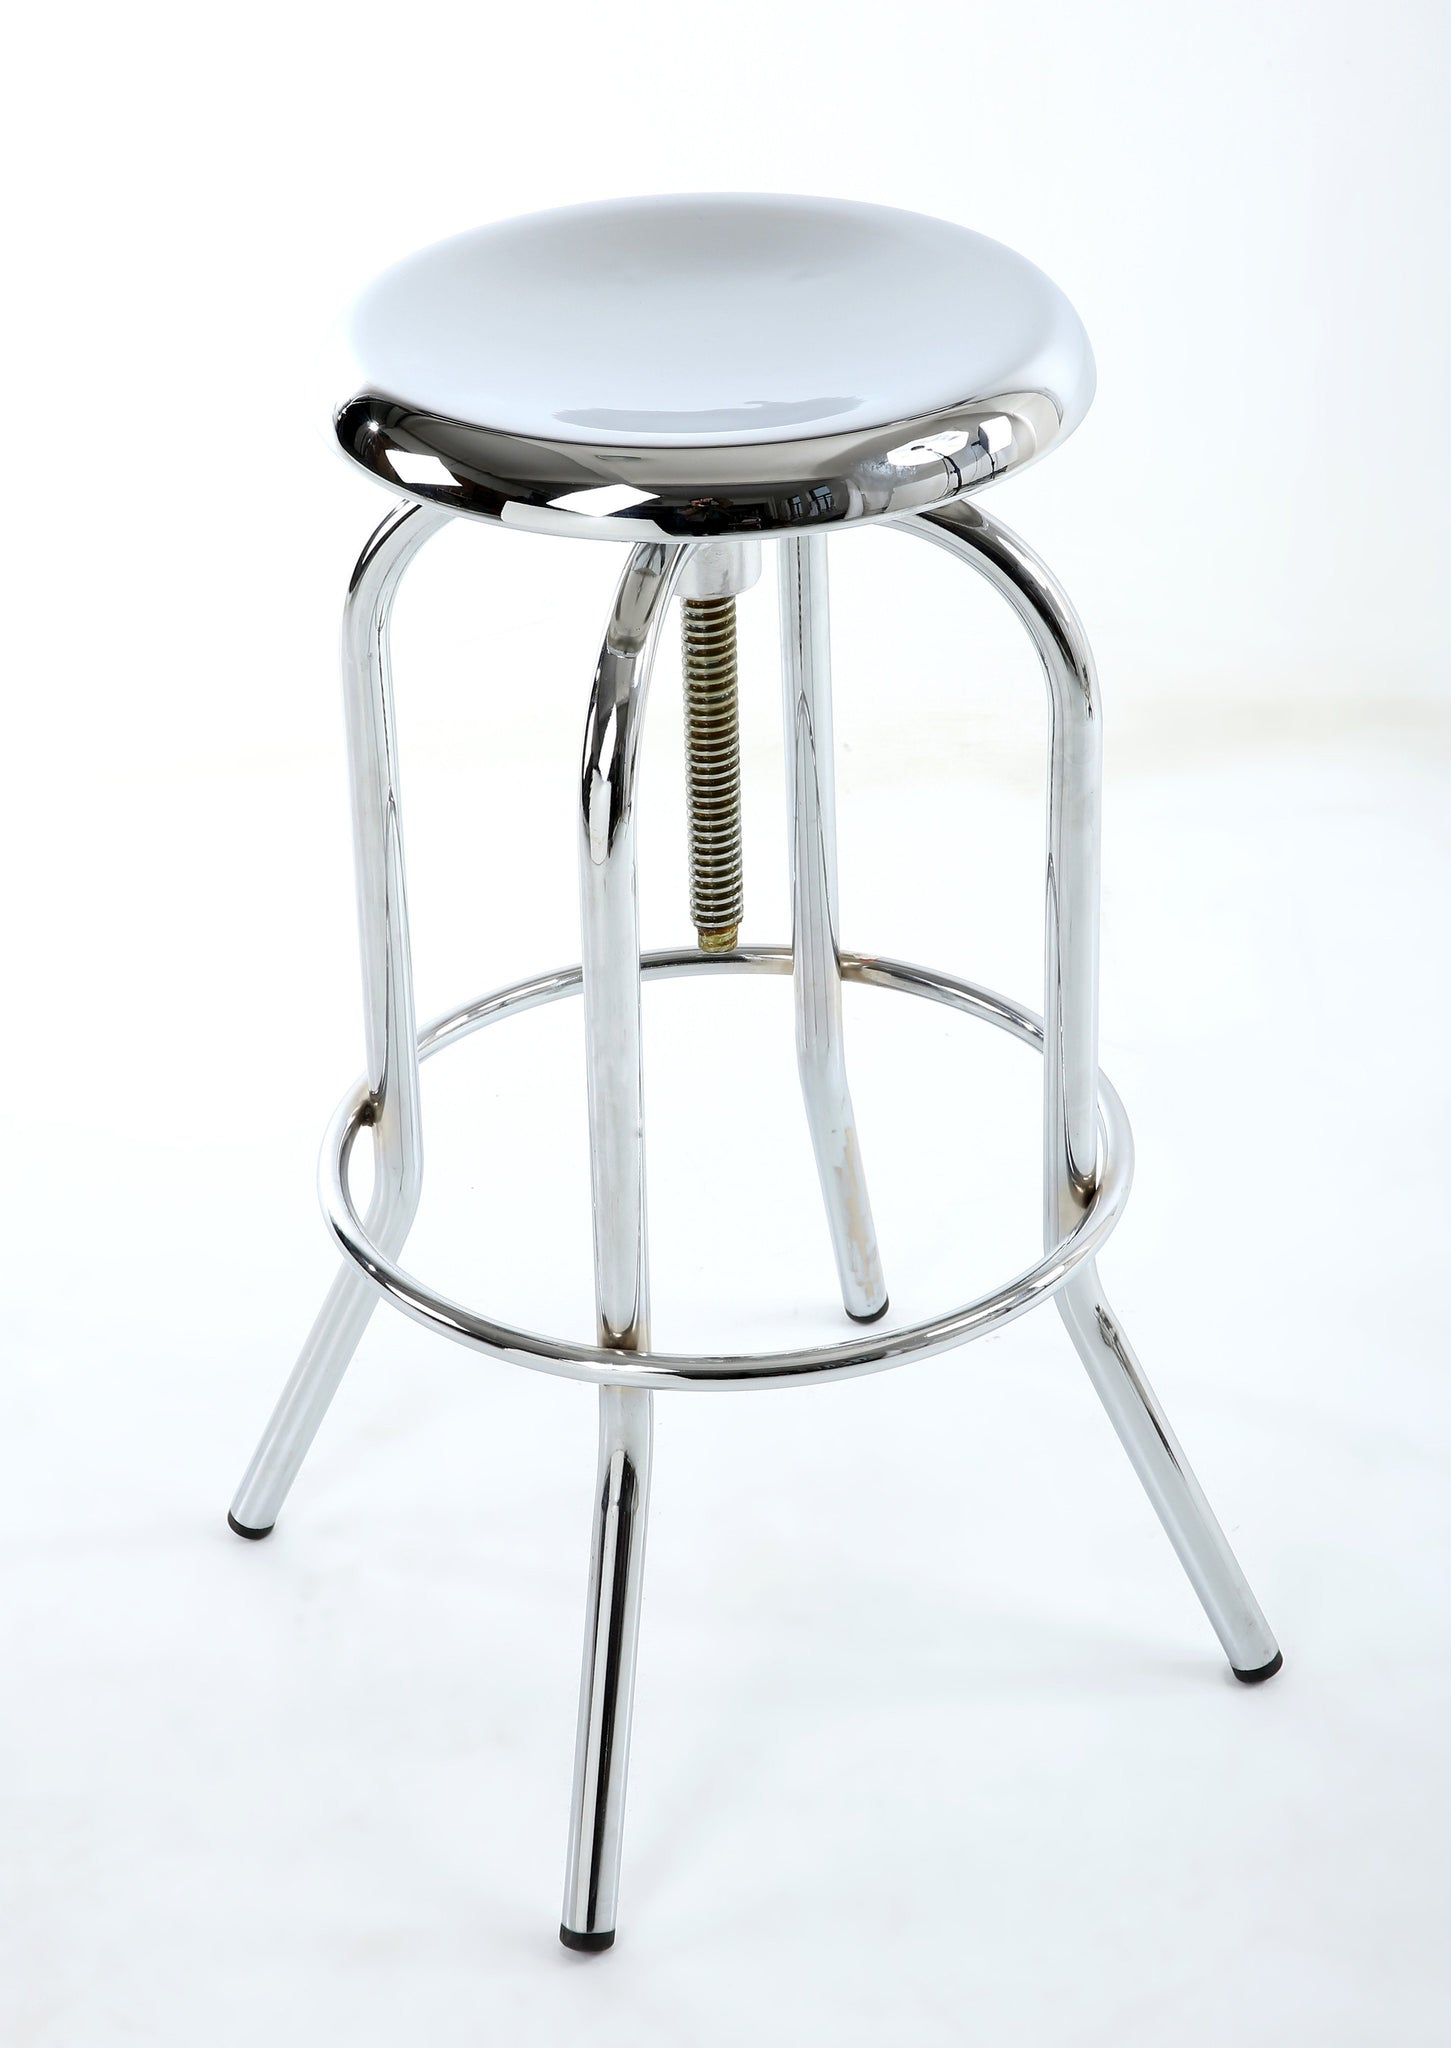 Mercury Polished Chrome Bar Stool-Bar Stool contemporary polished finish-shankar-GoFurn Furniture Store Kent